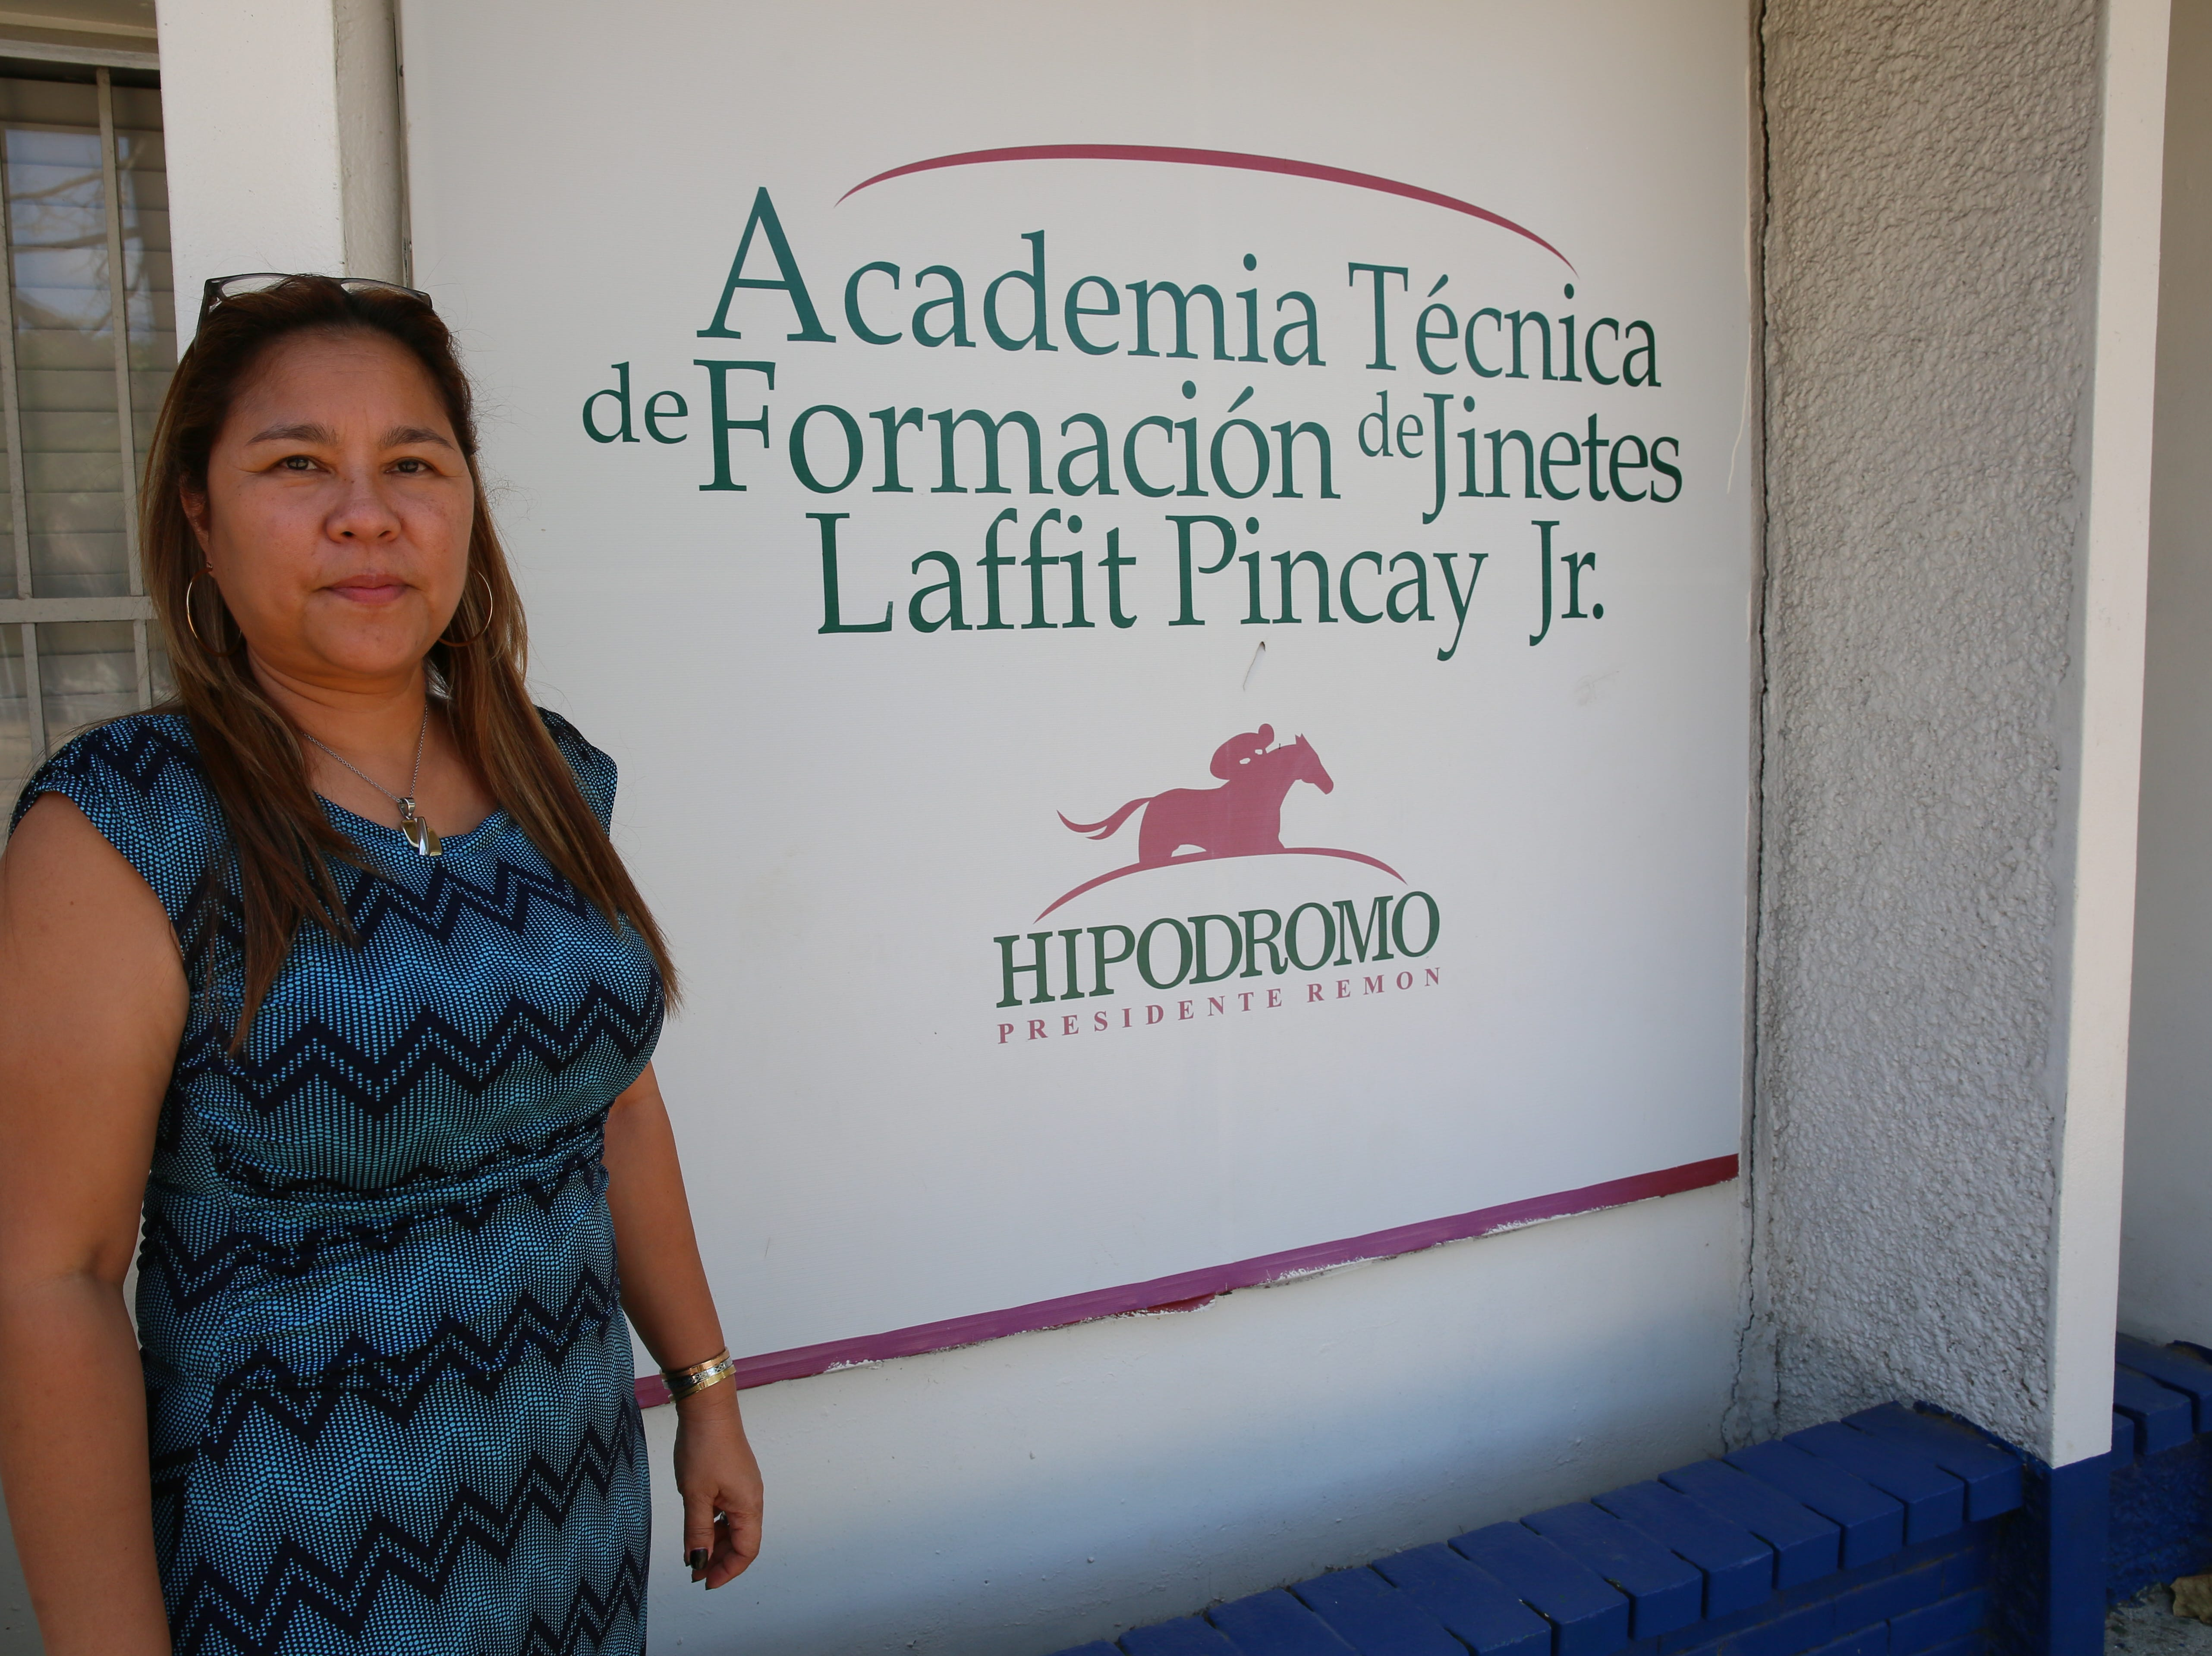 Graciela Yung Shing, director of the Laffit Pincay Jr. Technical Jockey Training Academy in Panama, oversees the 45 students and staff of teachers and former jockeys.